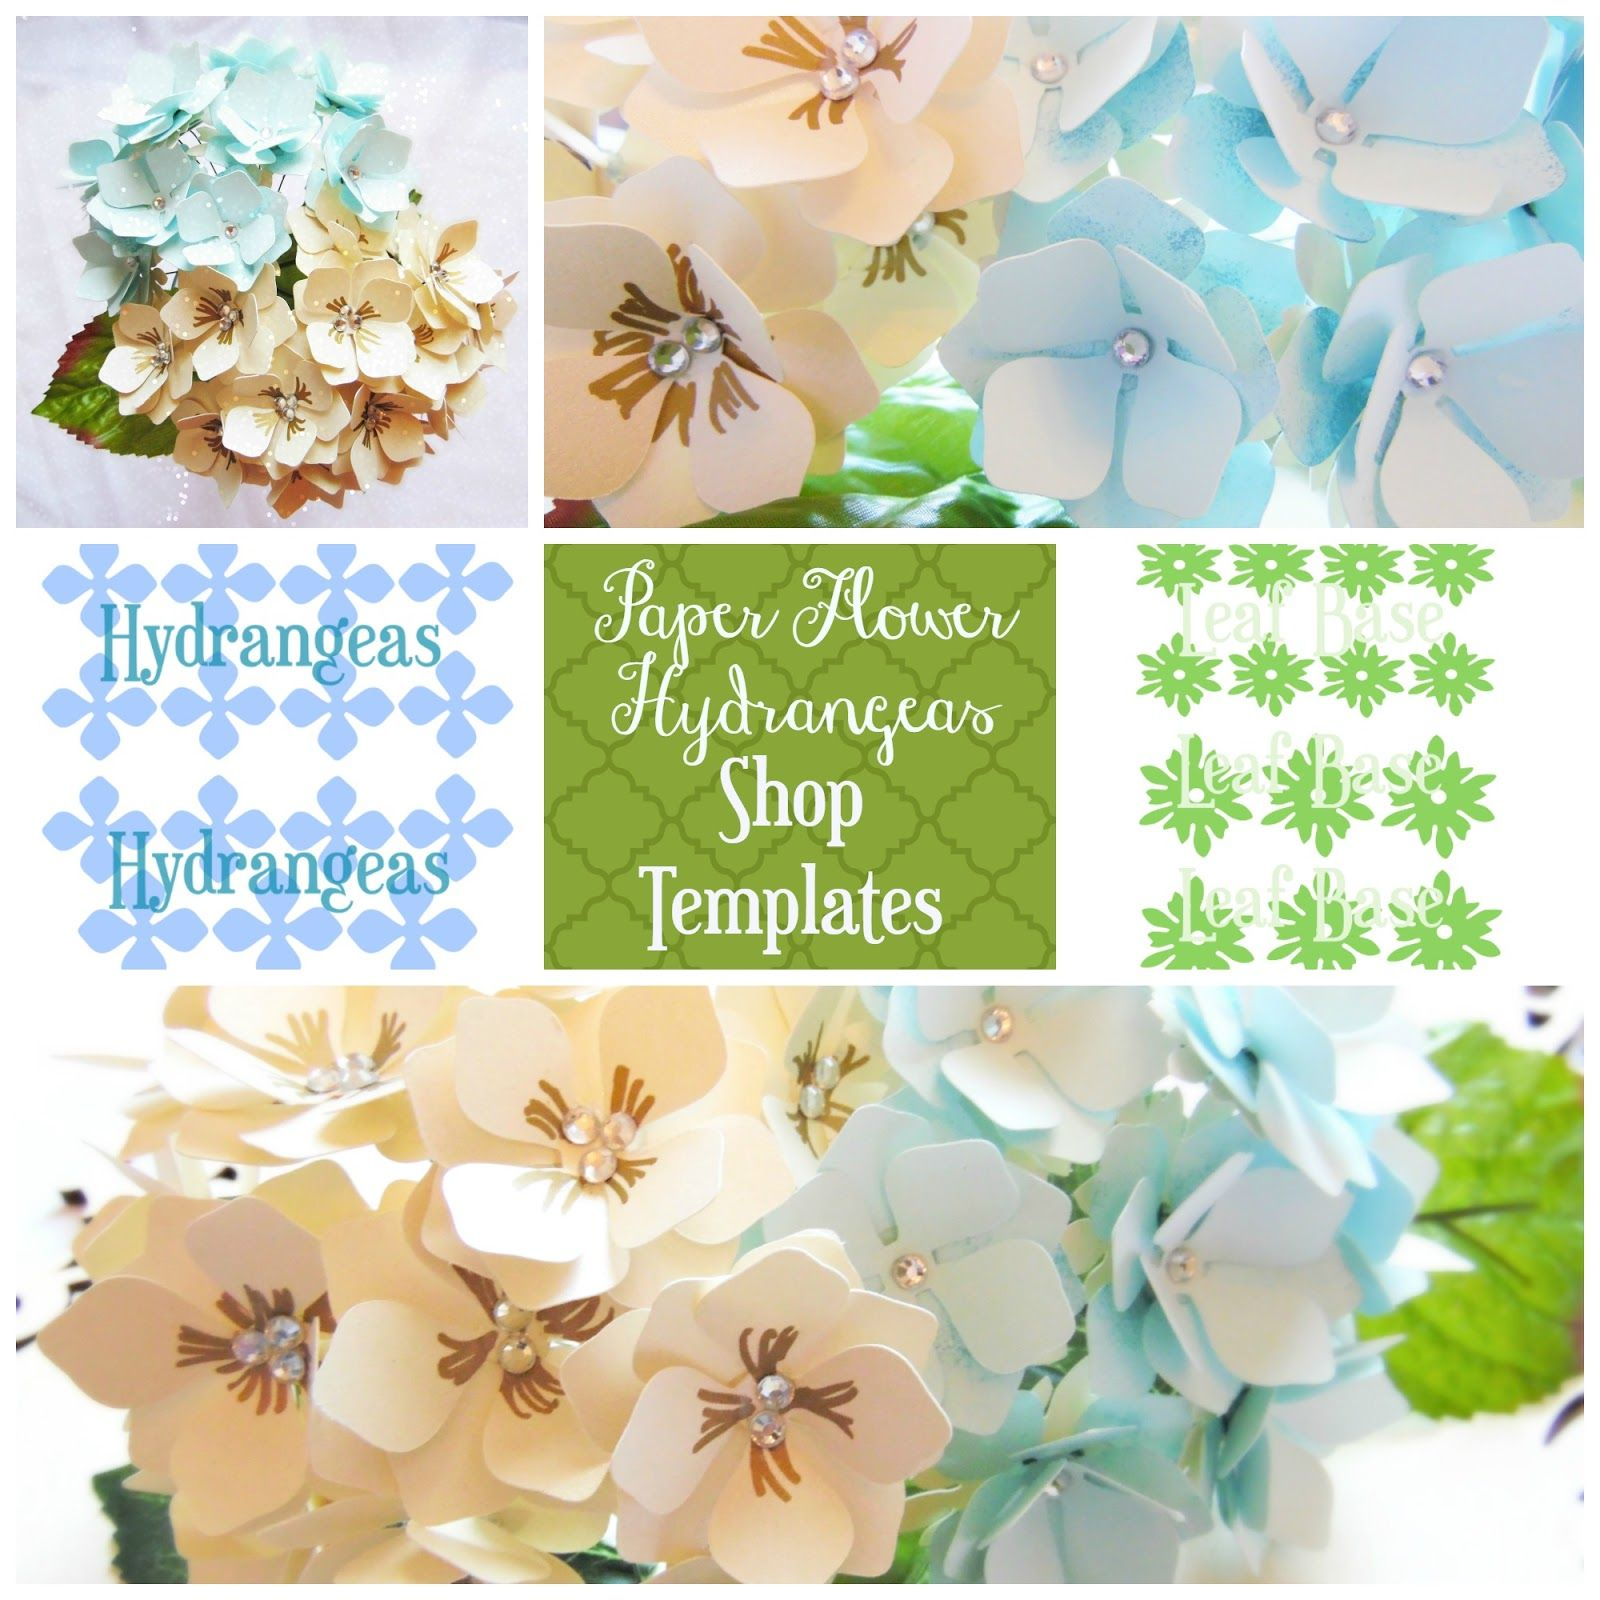 Easy Diy Paper Flower Hydrangeas Via Http Www Apinchofjoy Com 2016 05 Busy Monday 218 Flower Templates Printable Flower Template Paper Flowers